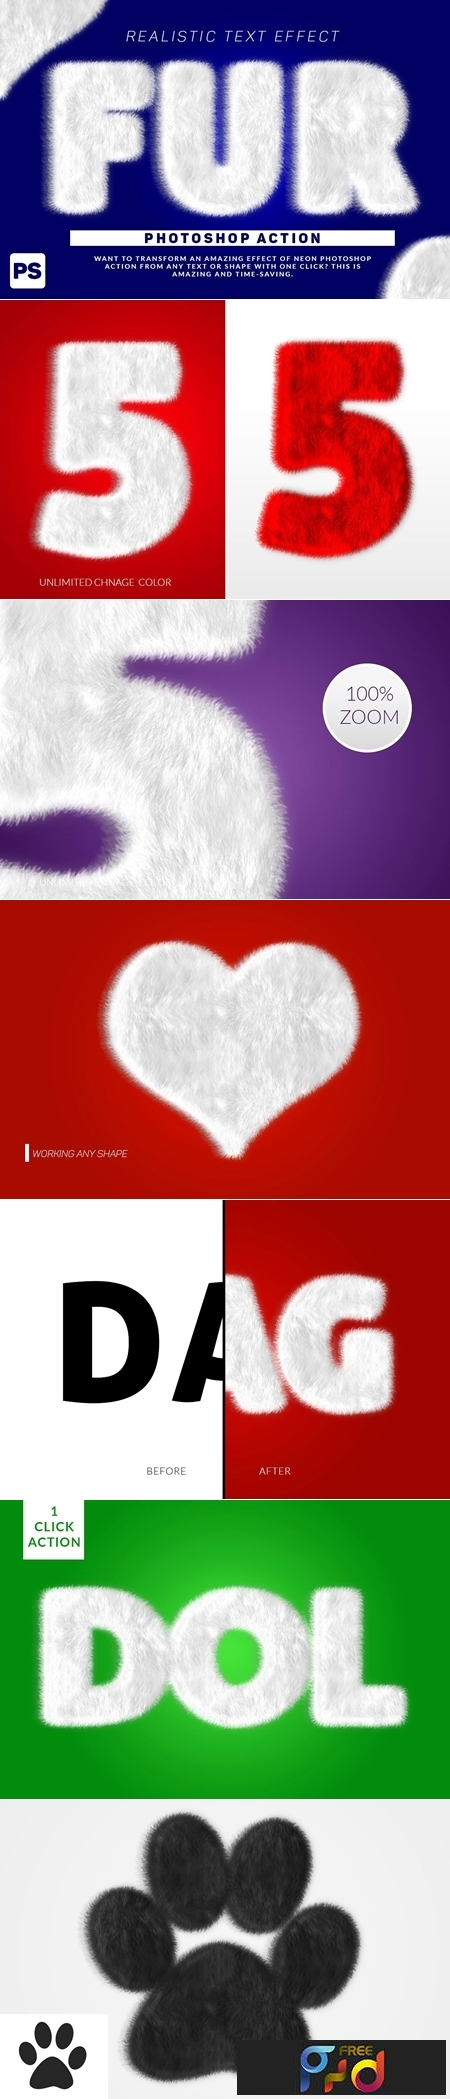 Wool Text Effect Photoshop Action 3165755 1